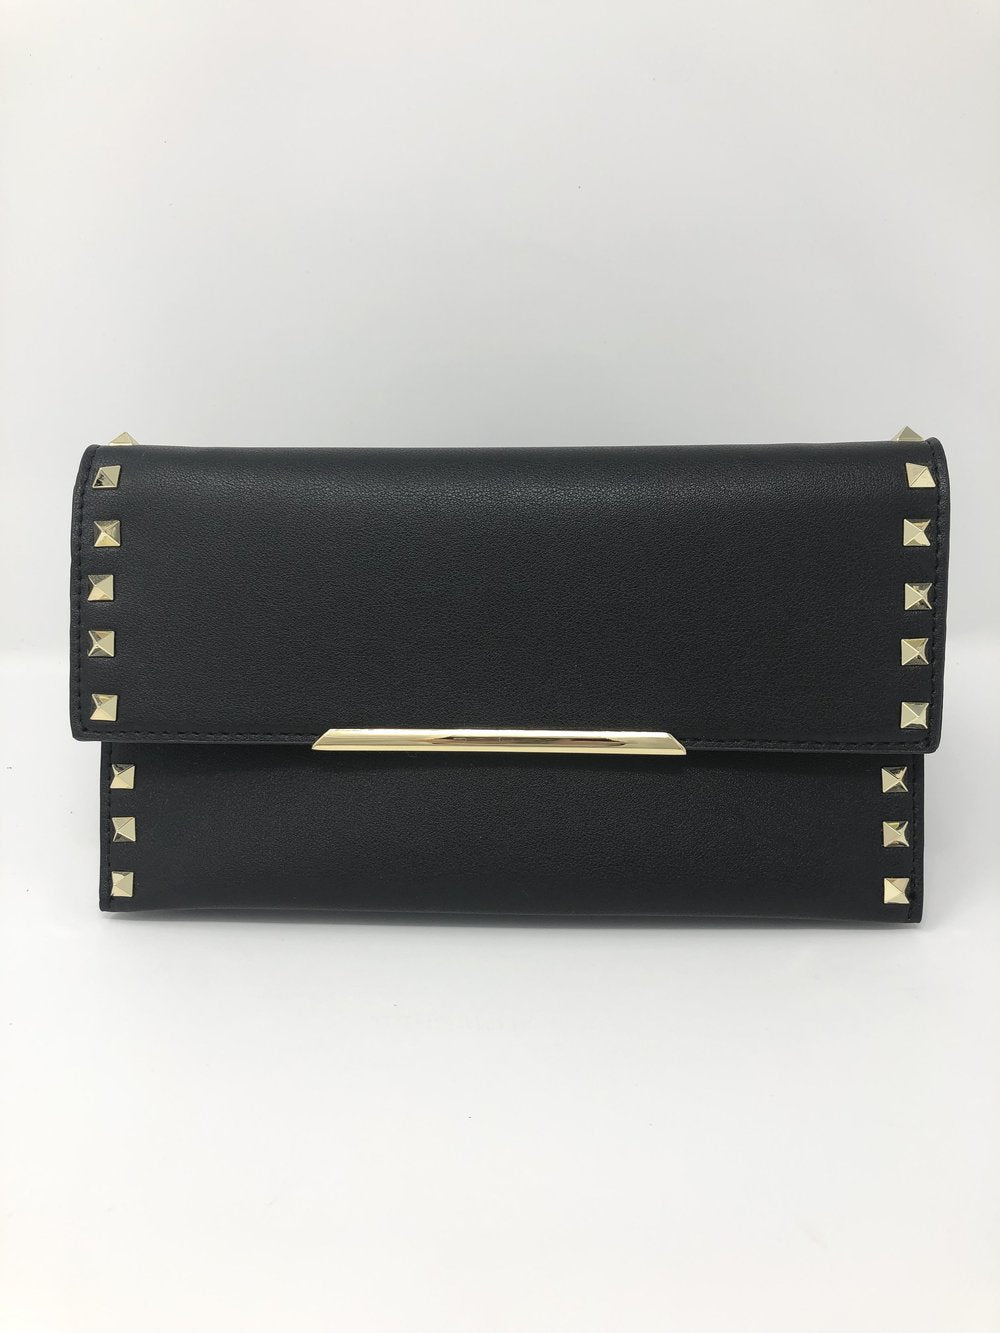 SALE! Black and Gold Studded Clutch